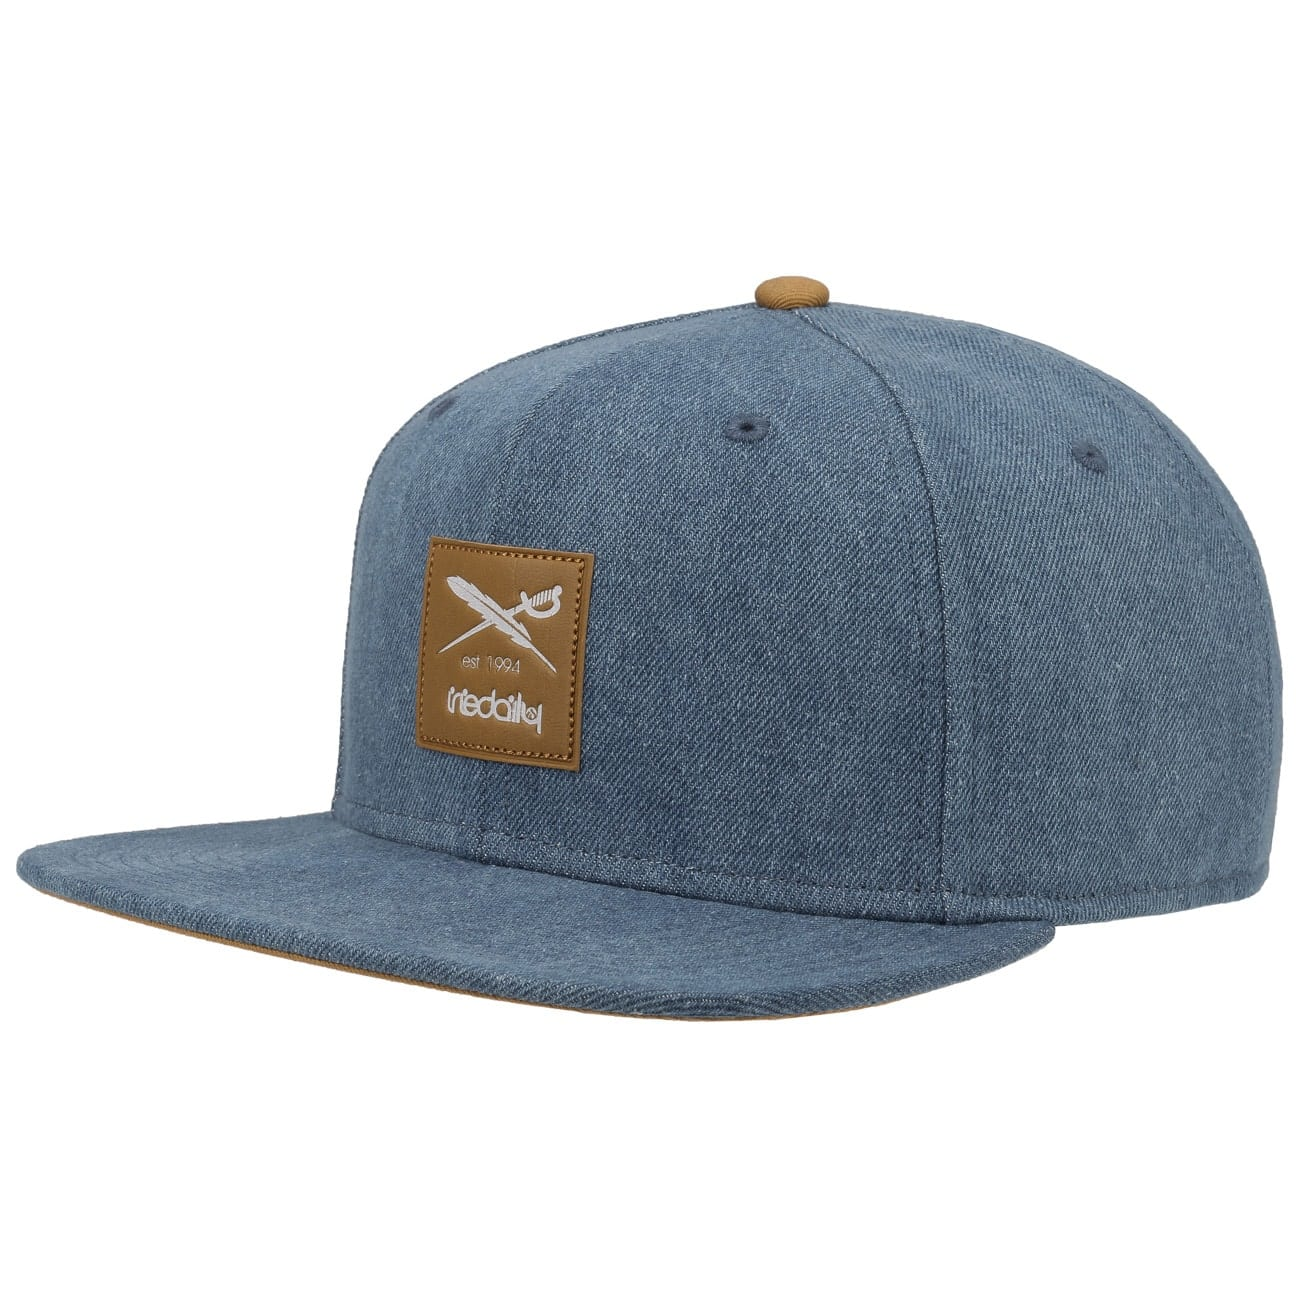 Casquette Exclusive Flag by iriedaily  baseball cap